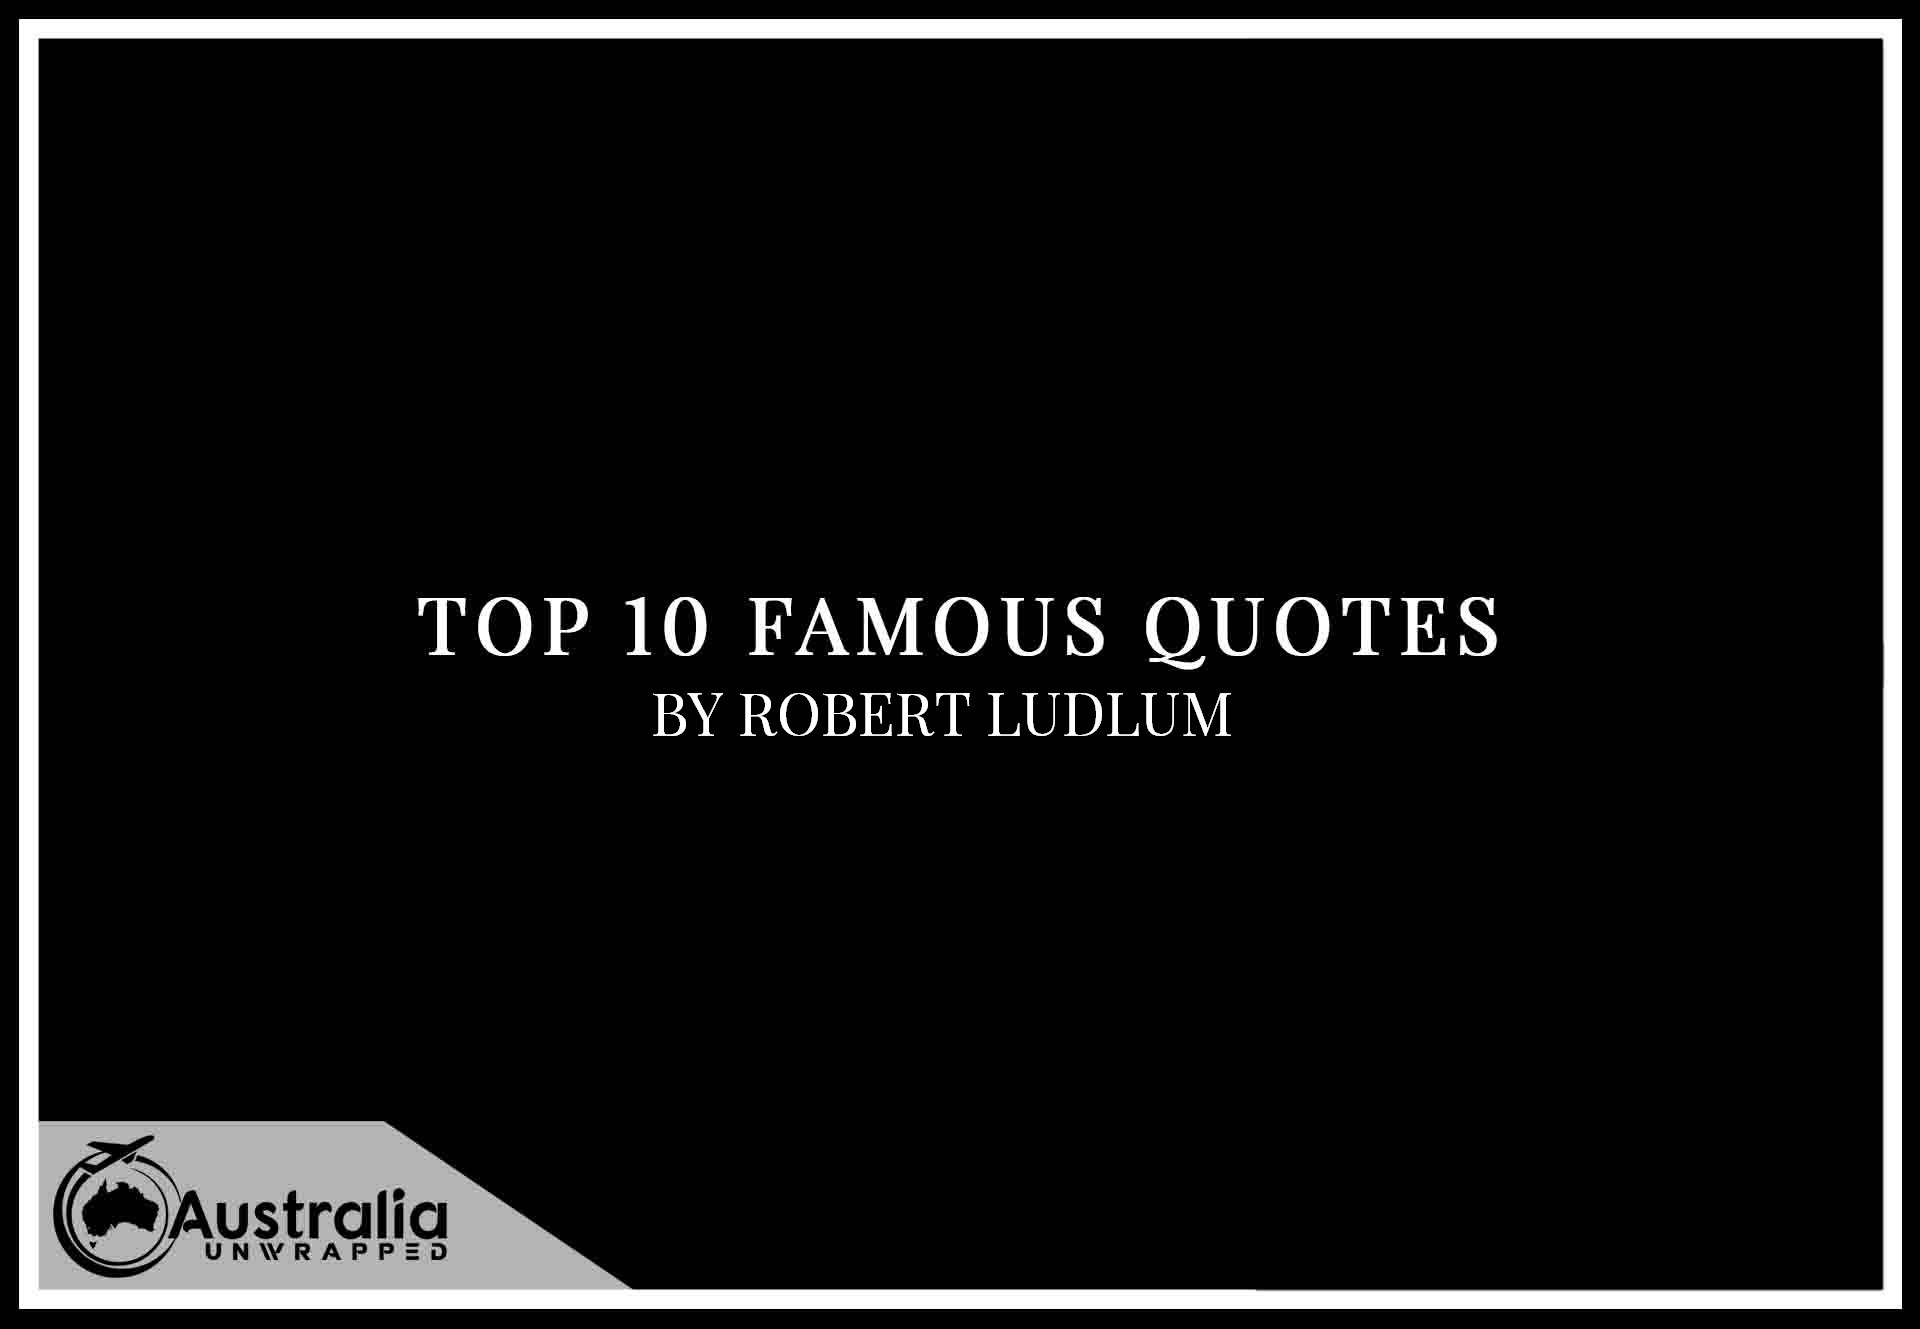 Top 10 Famous Quotes by Author Robert Ludlum